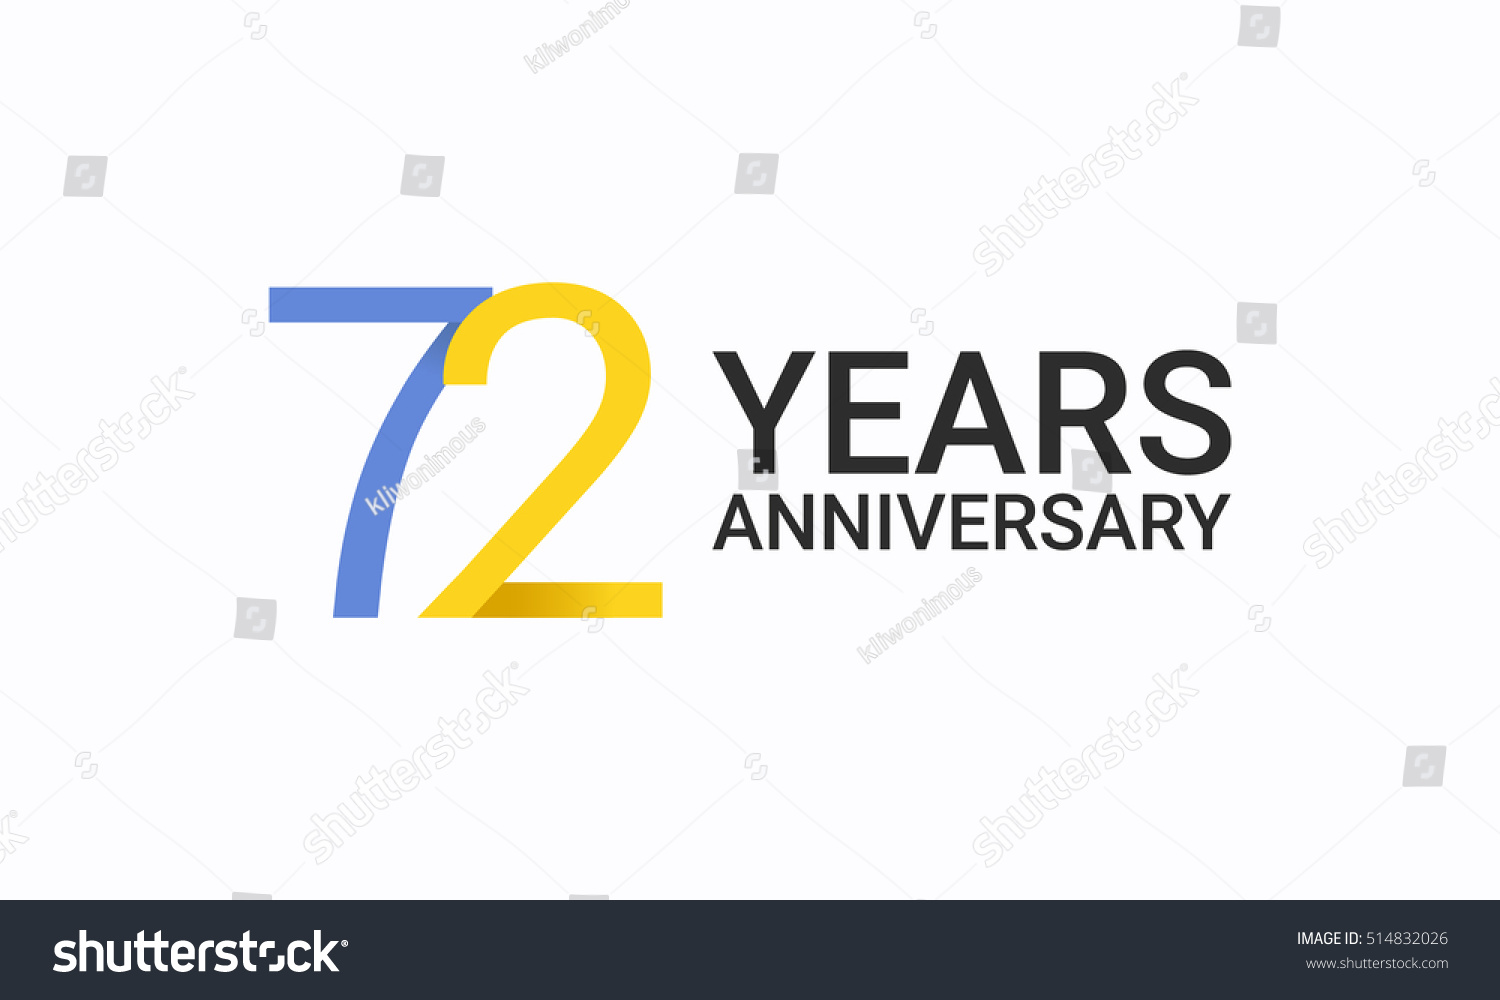 72 years anniversary birthday symbols signs stock vector 514832026 72 years anniversary birthday symbols and signs using flat and simple vector design template buycottarizona Gallery